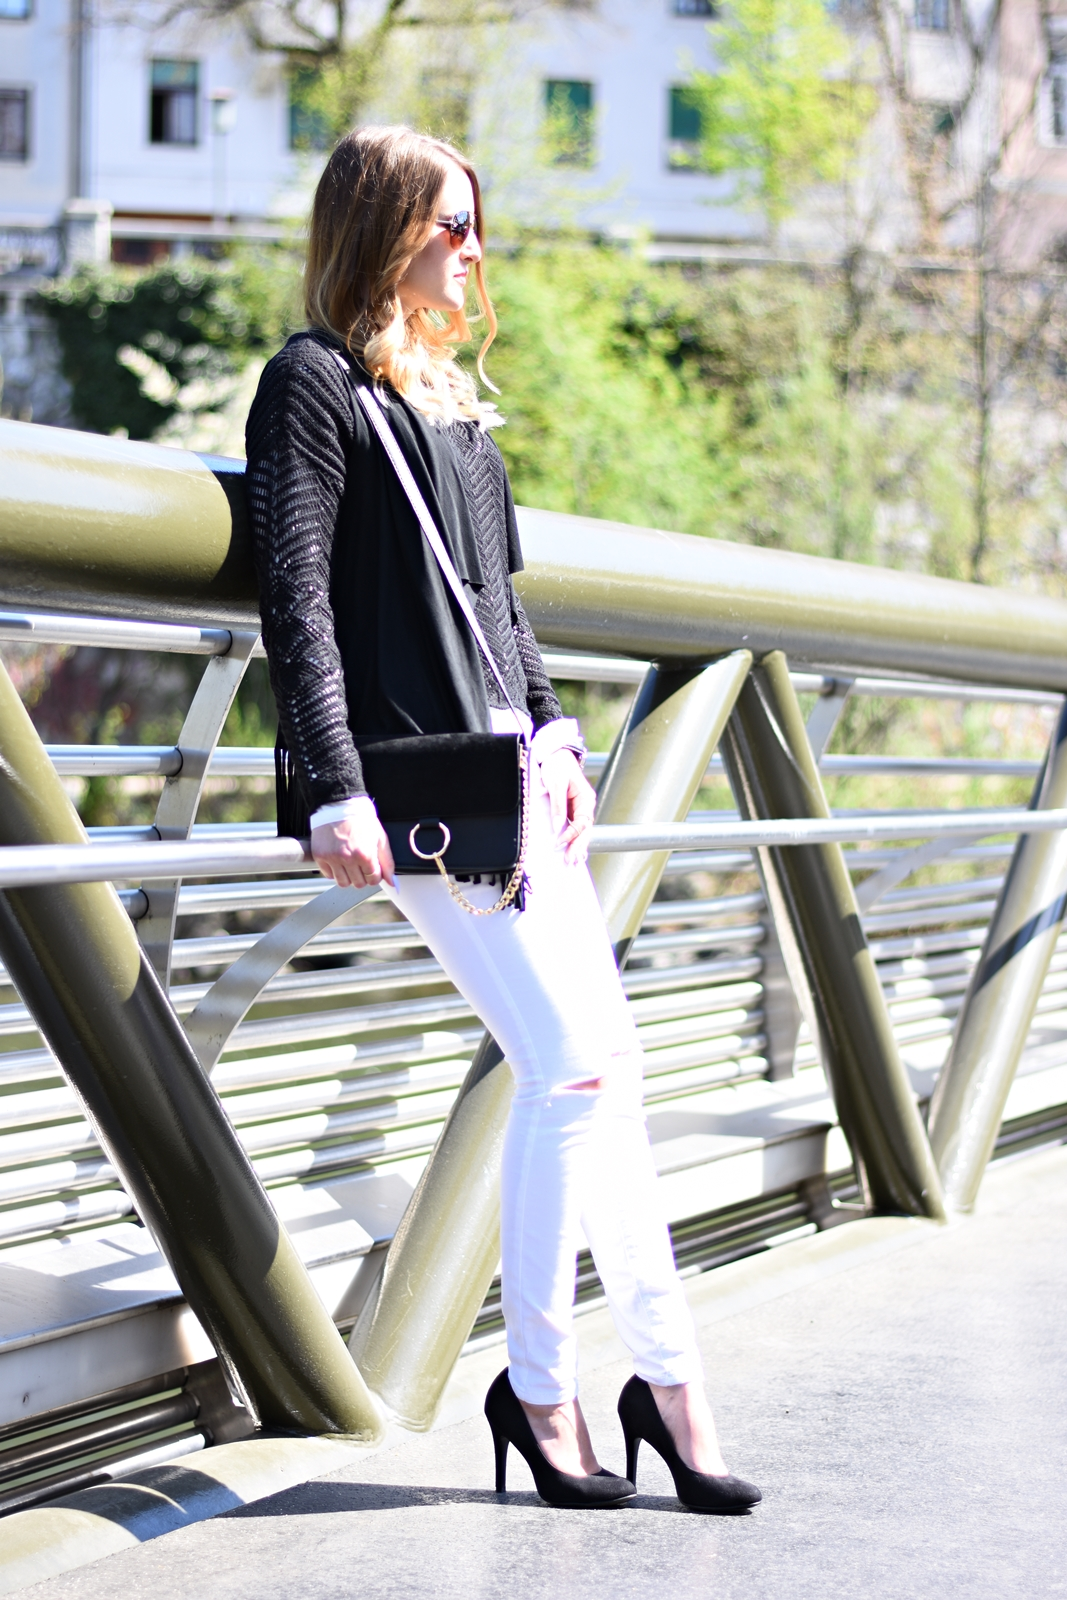 7Girls 7Styles Blogparade - Black and White - Fashionladyloves